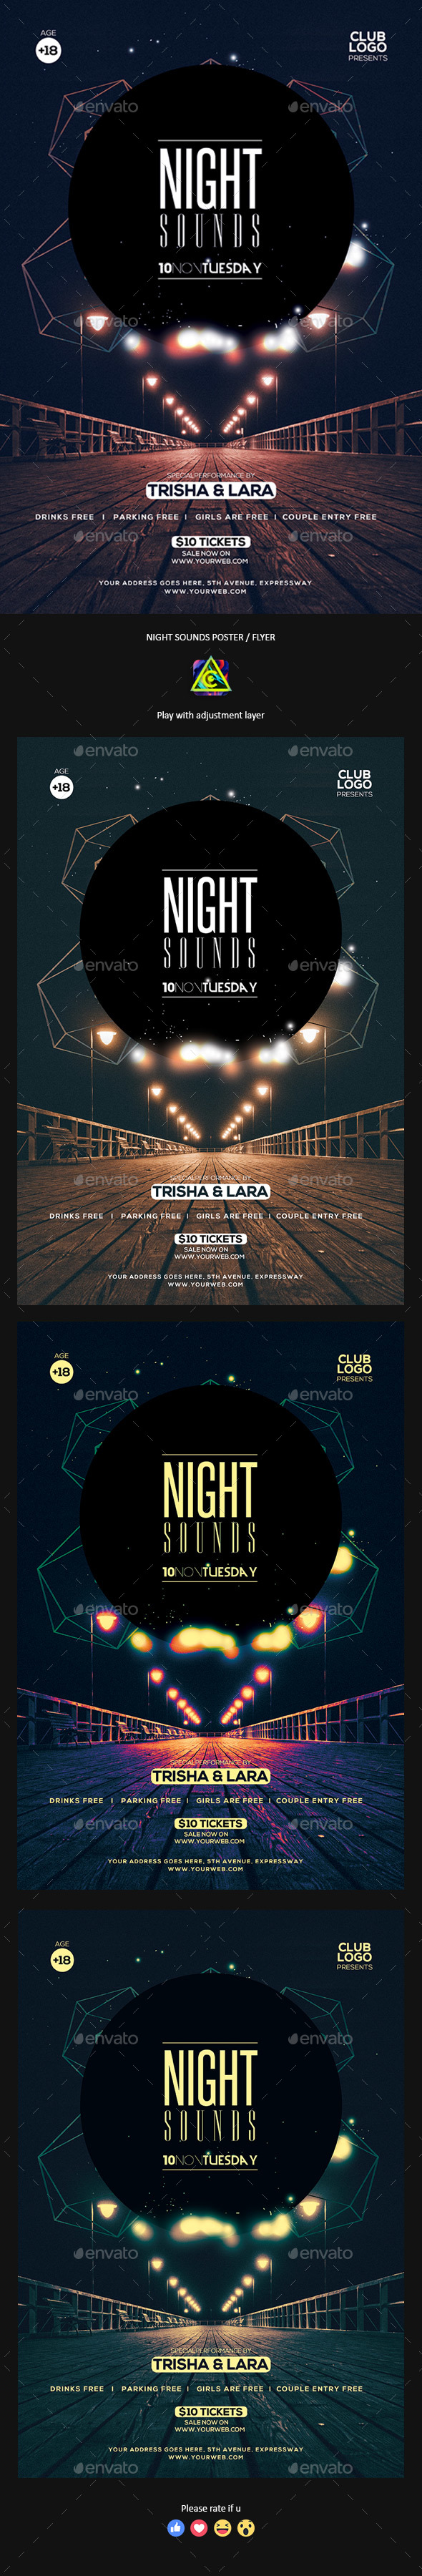 Night Sounds Poster / Flyer - Clubs & Parties Events